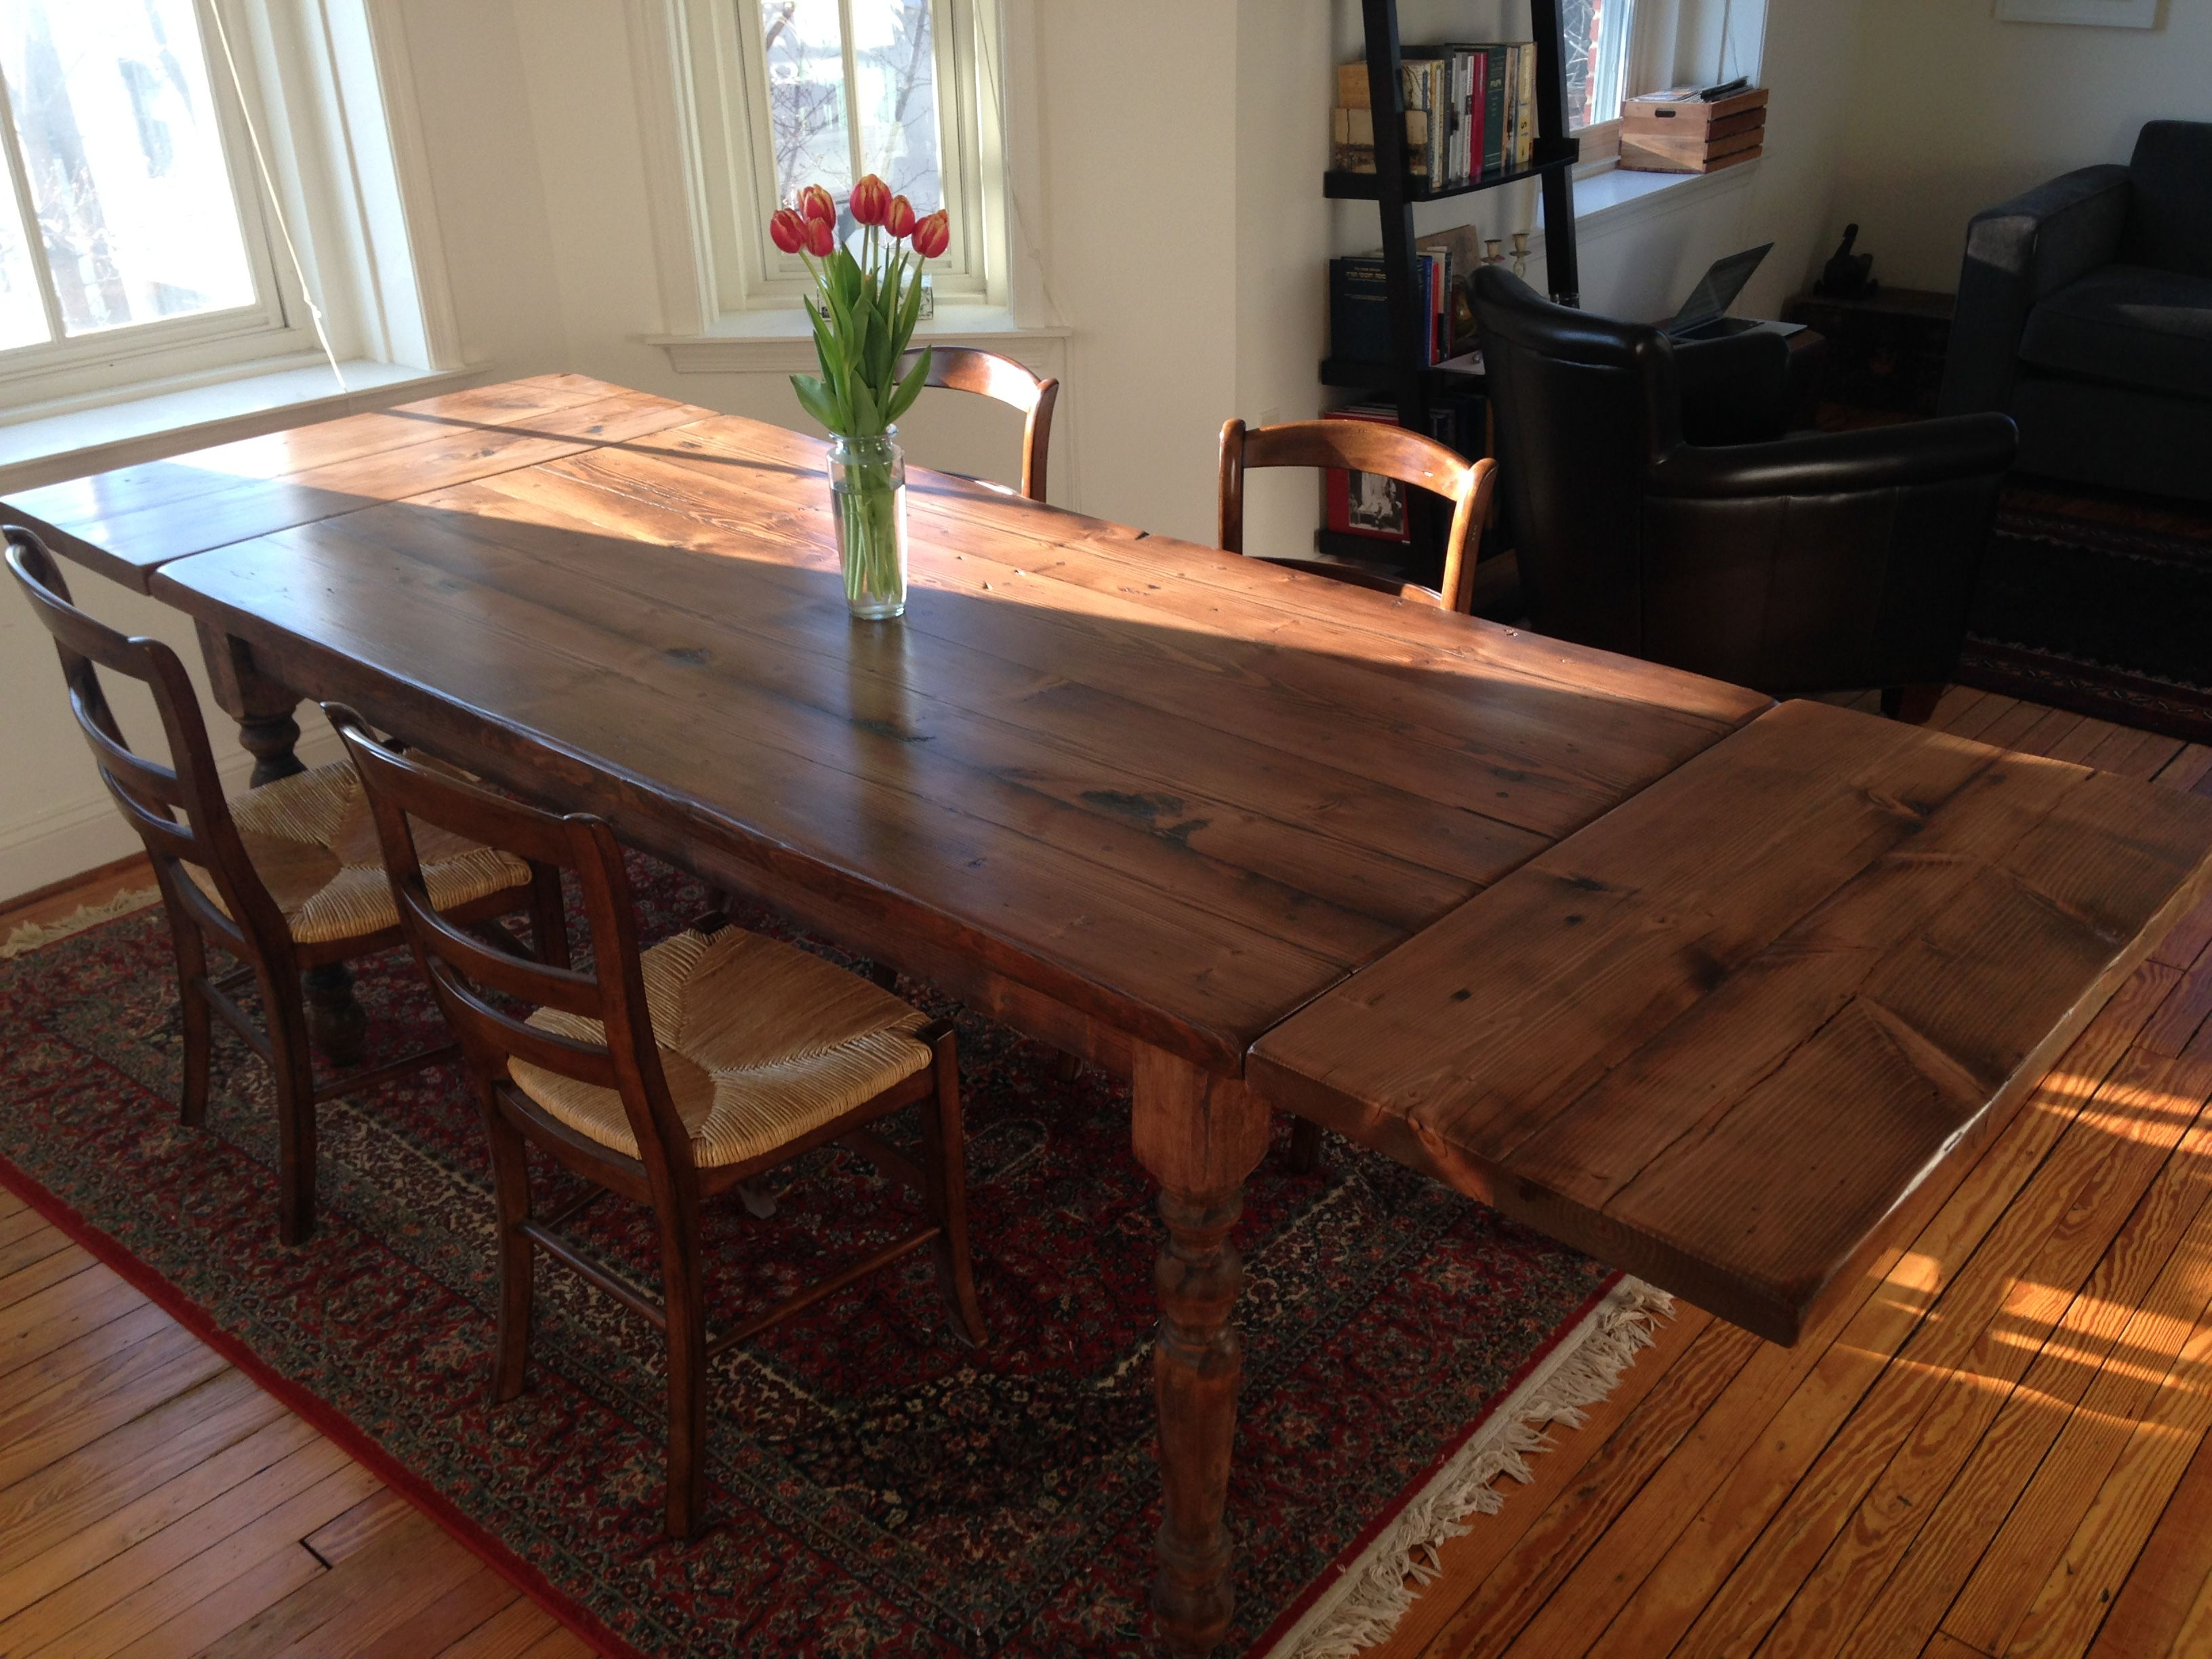 Reclaimed Wood Farm Table With Turned Columns And End Extensions